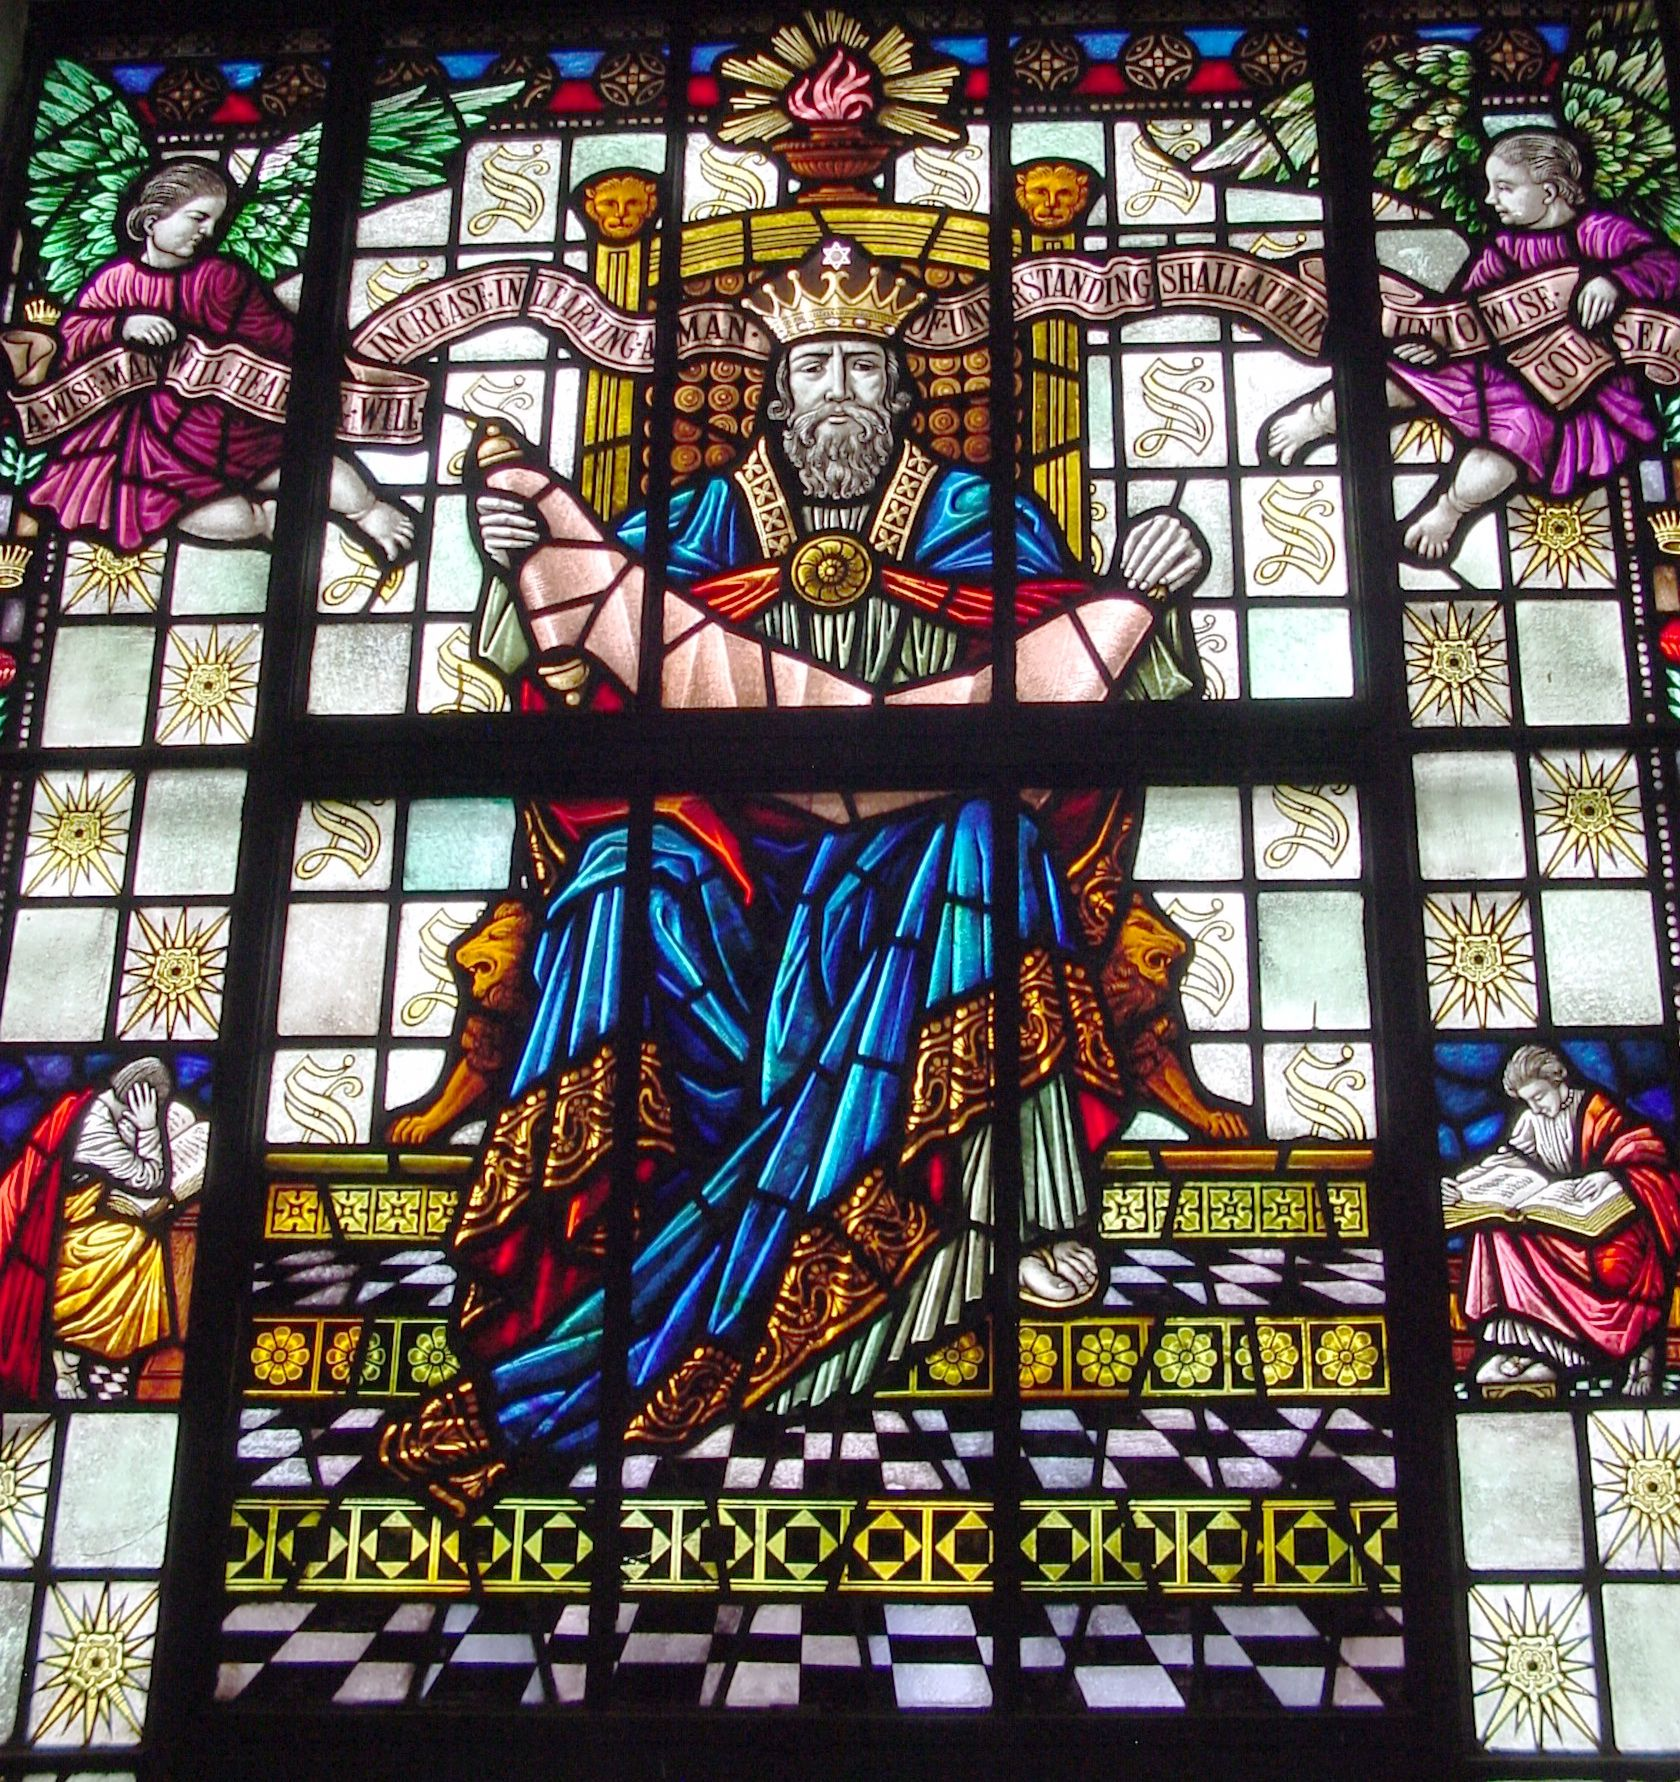 One of the many stained glass windows in the Old Teachers